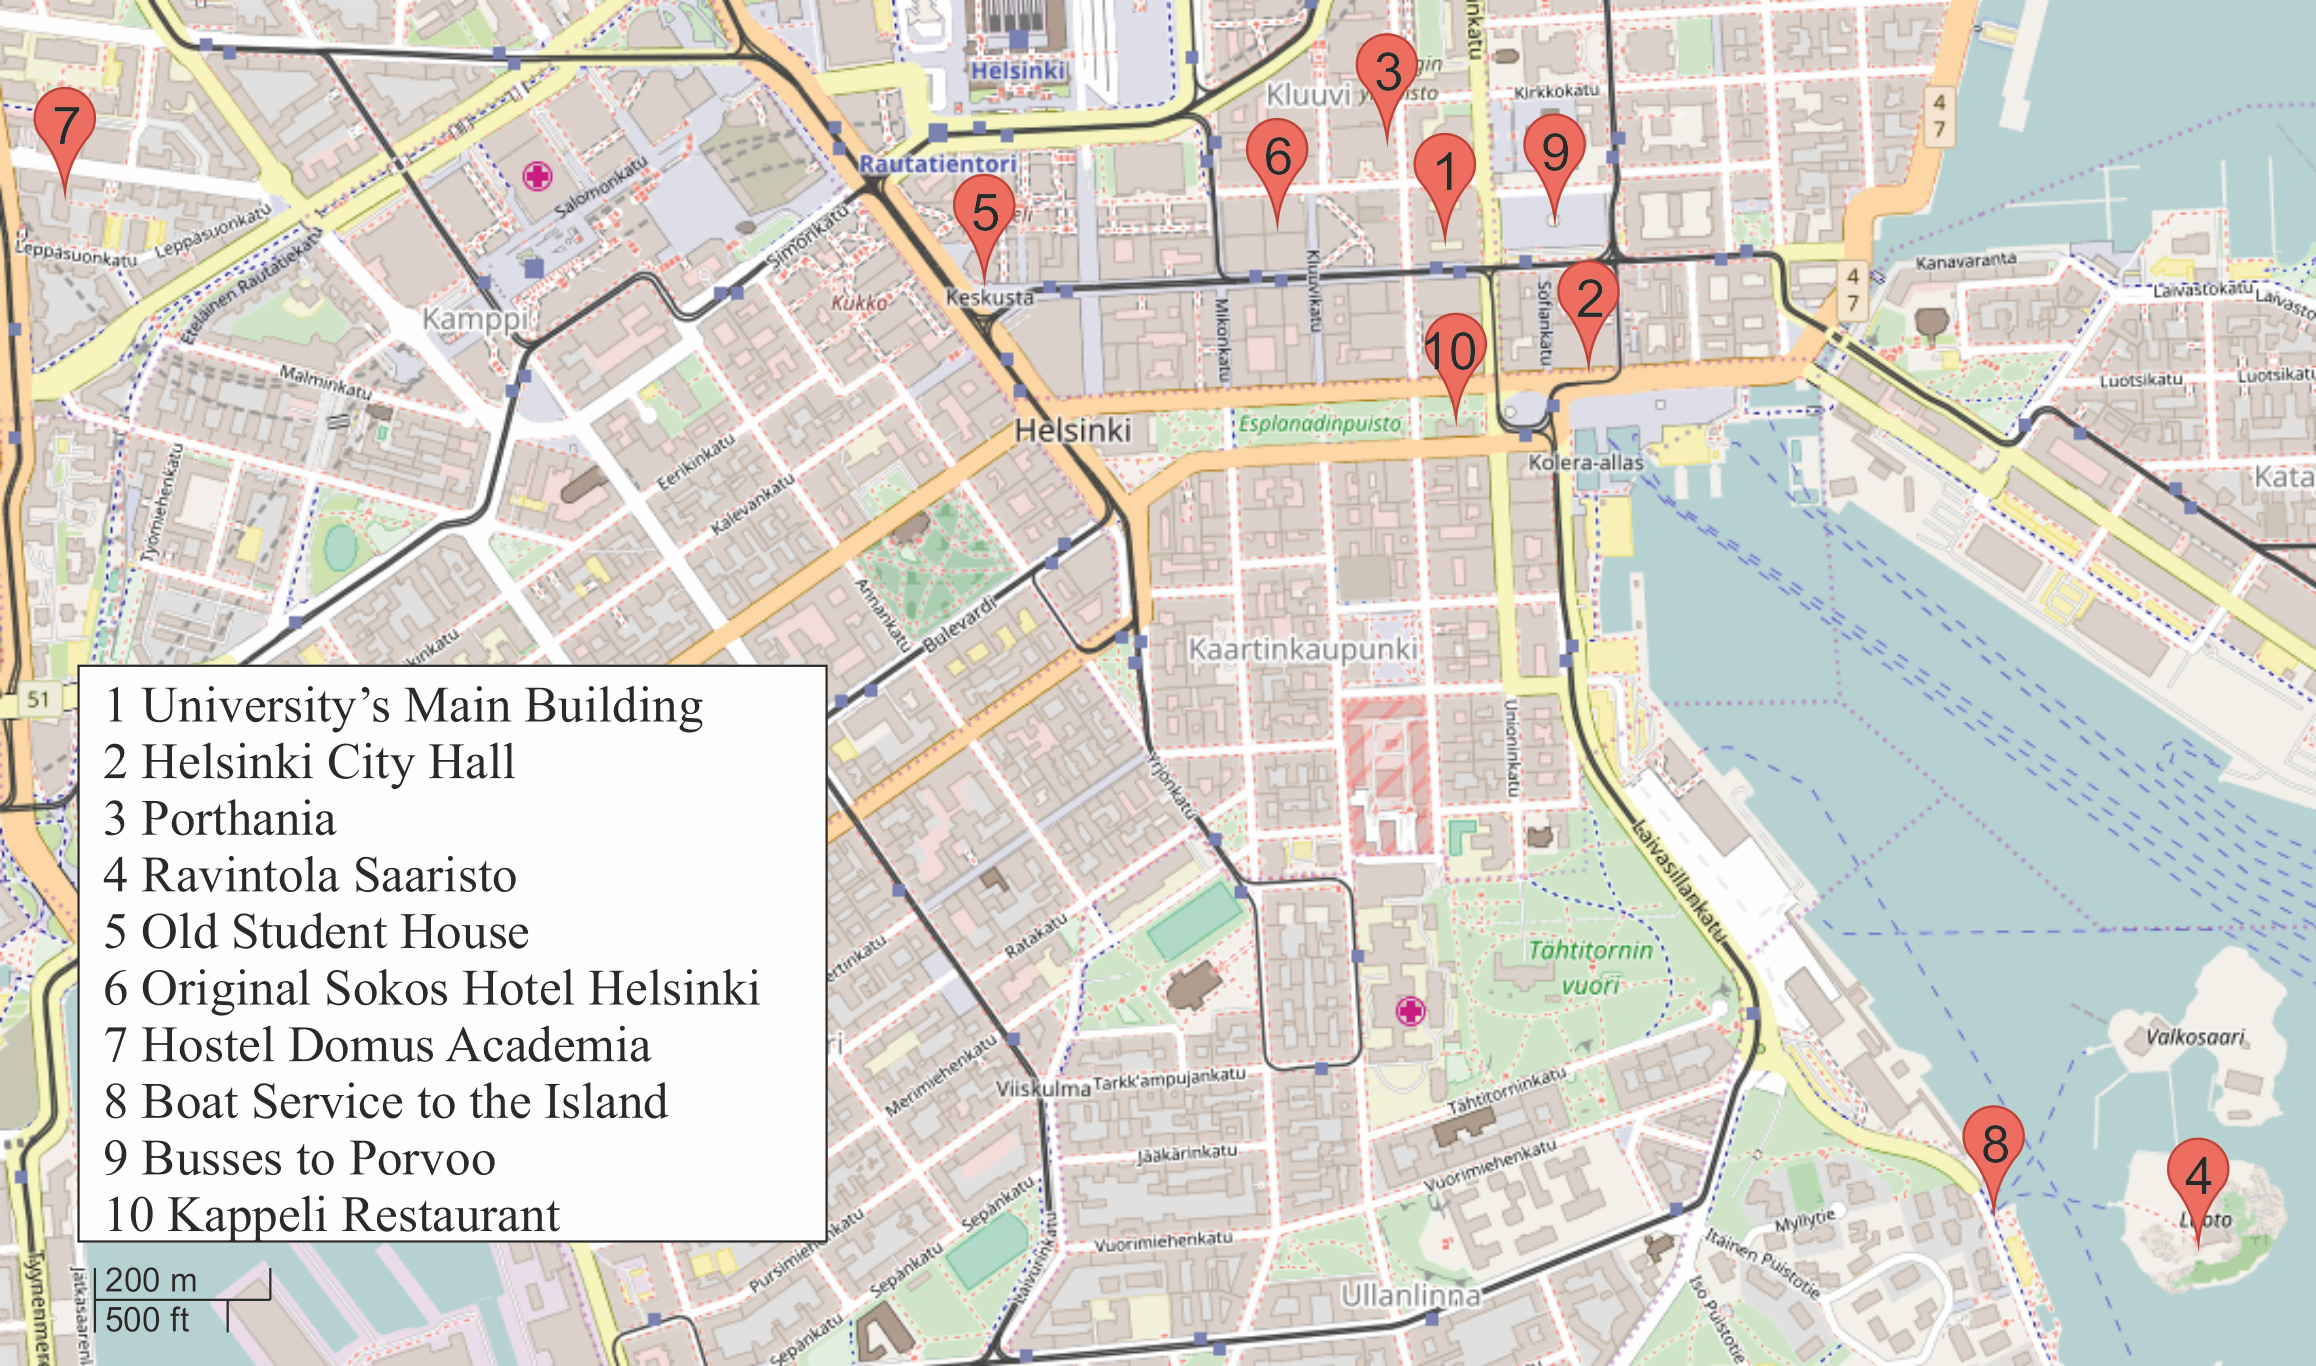 Instructions - Hrms 2017 - Helsinki City Map Printable